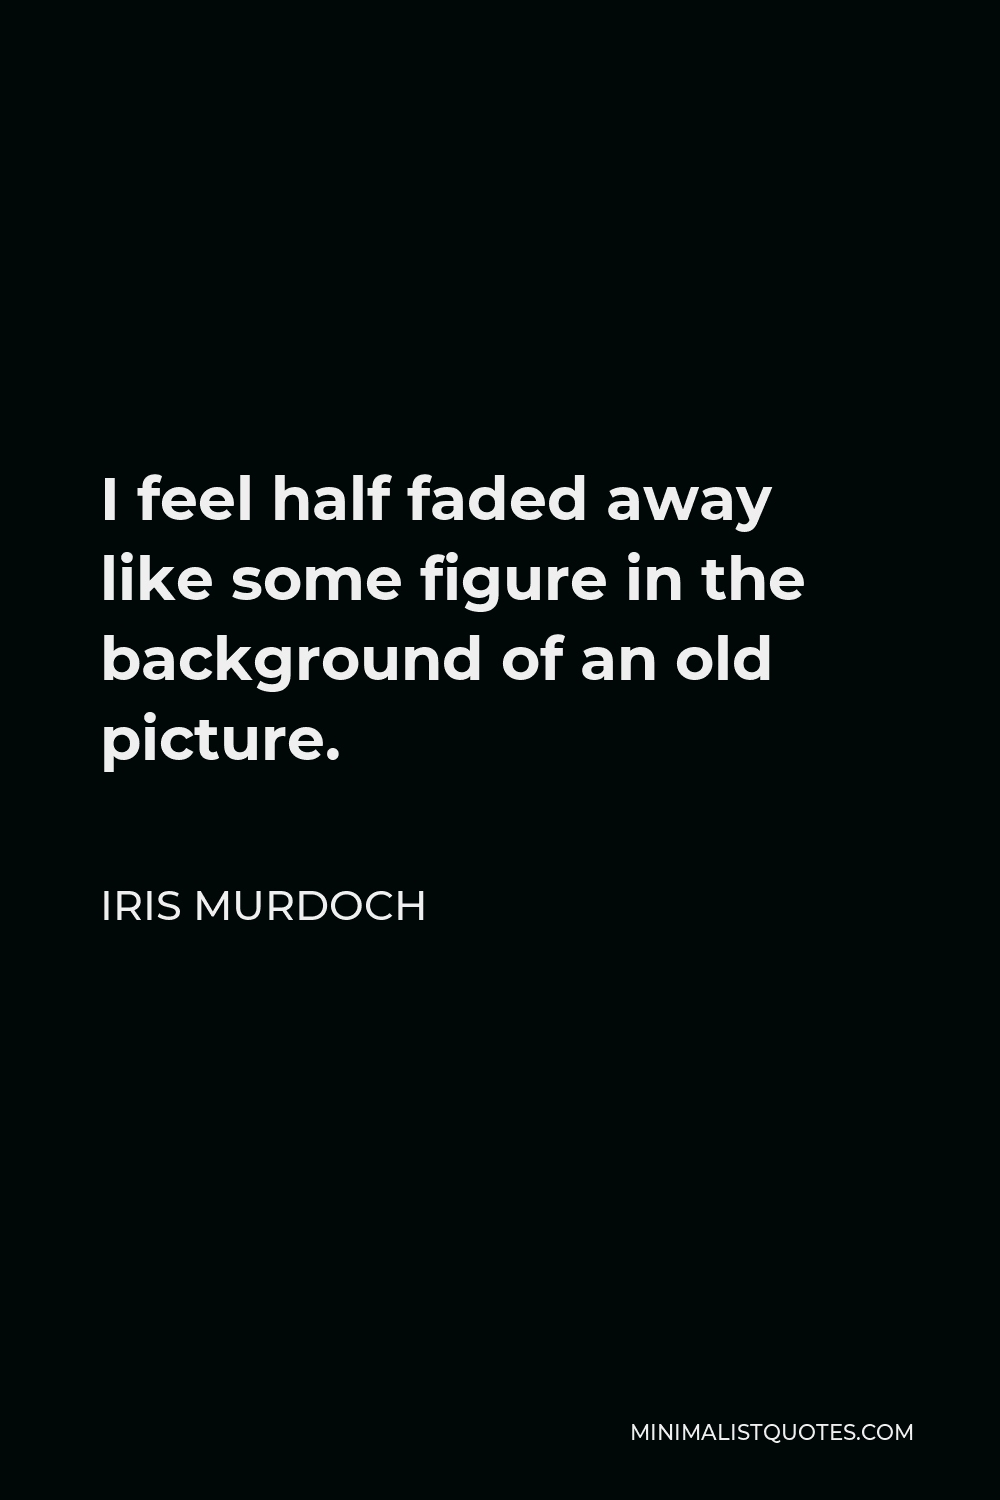 Iris Murdoch Quote - I feel half faded away like some figure in the background of an old picture.